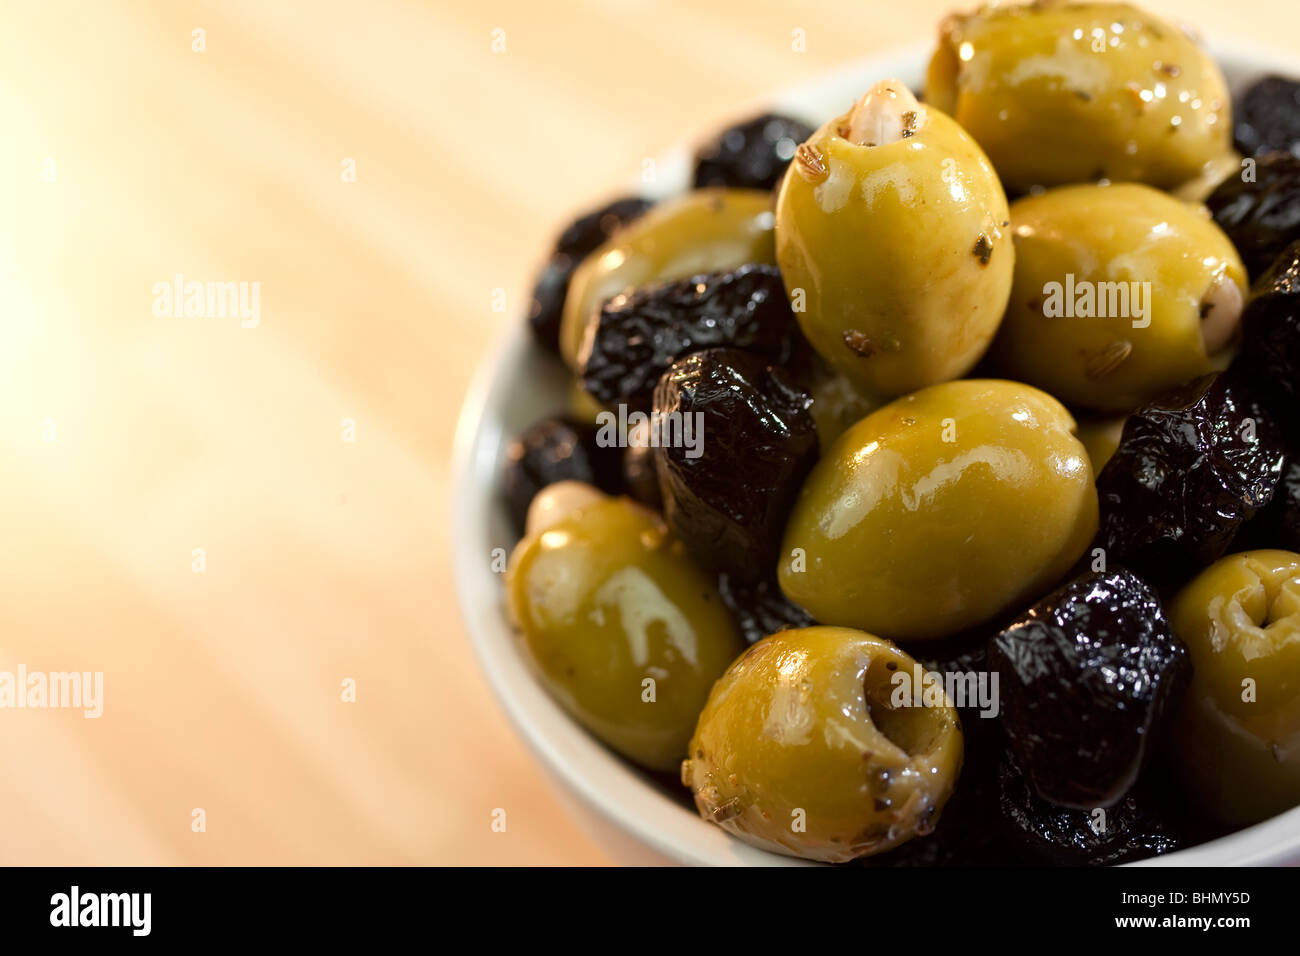 Close up macro photograph of a bowl of stuffed green and black Italian olives - Stock Image